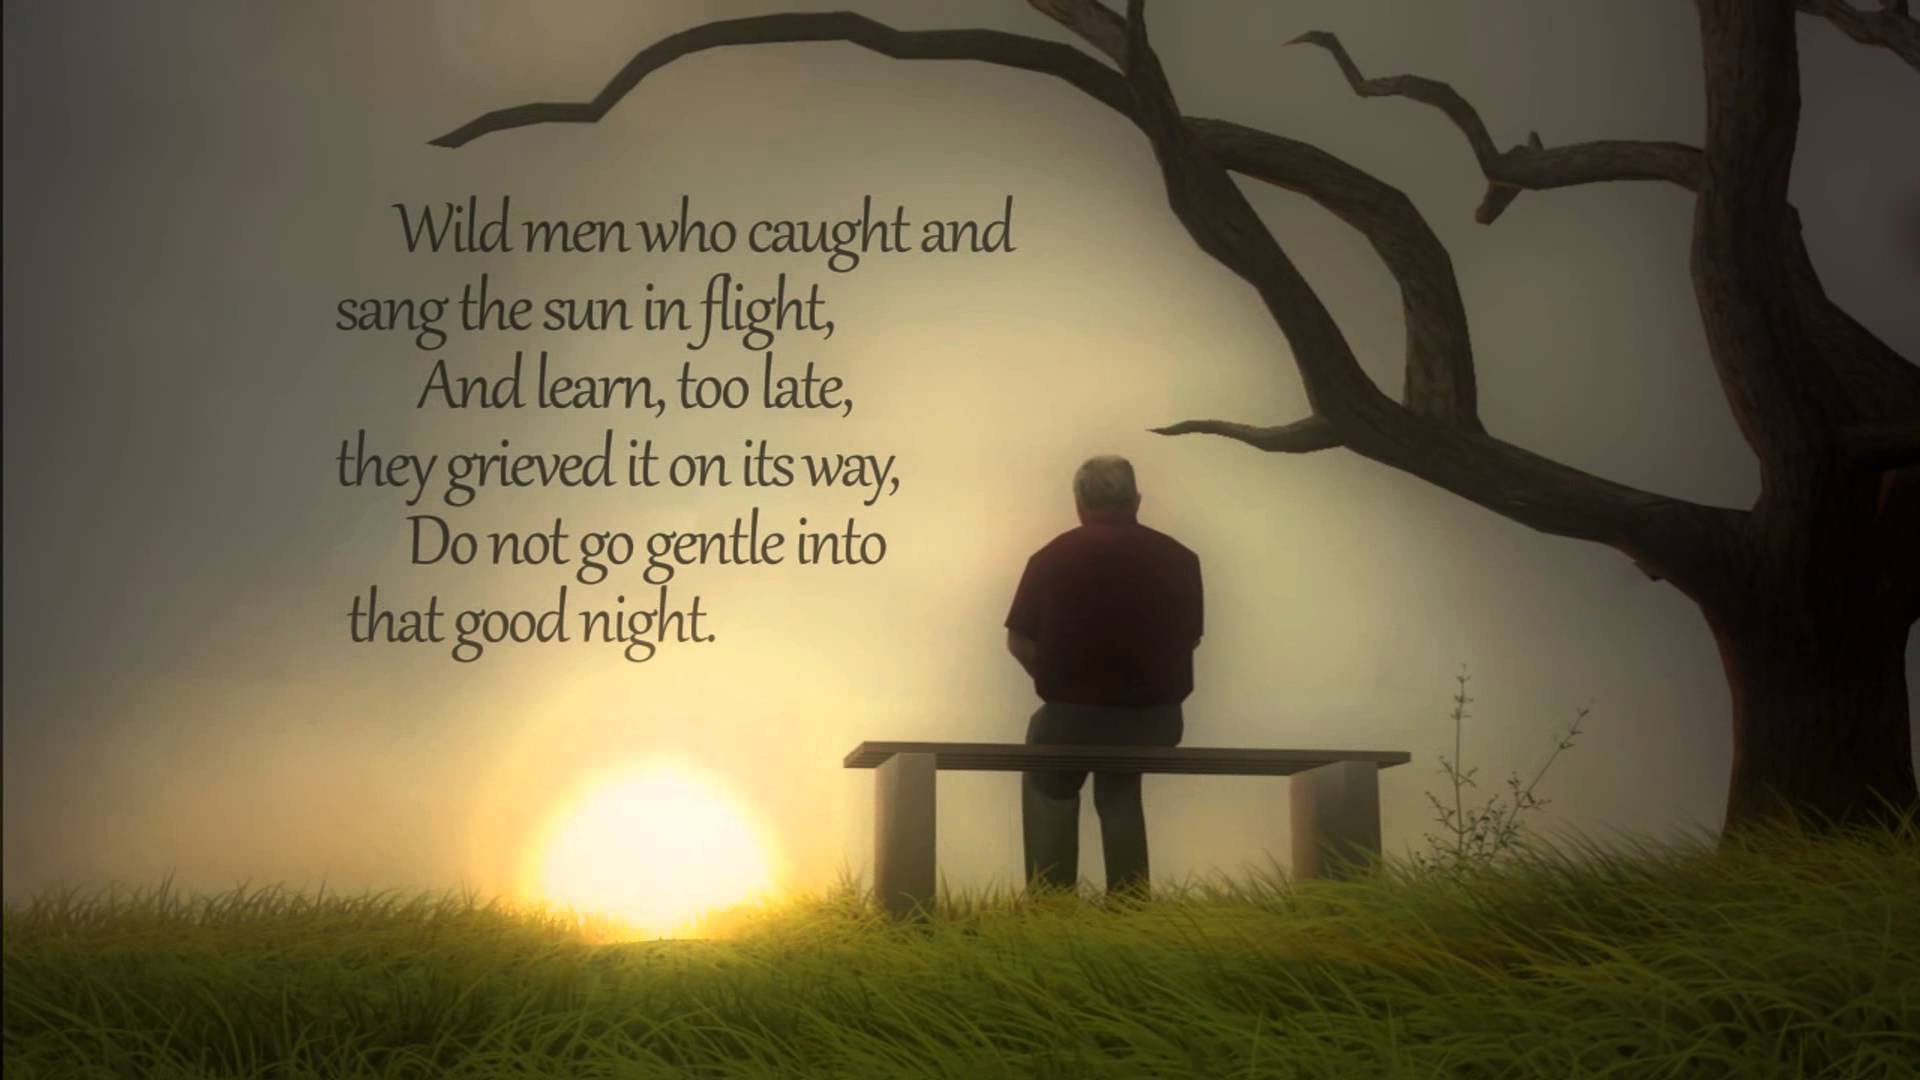 good night quotes hd whats app status download